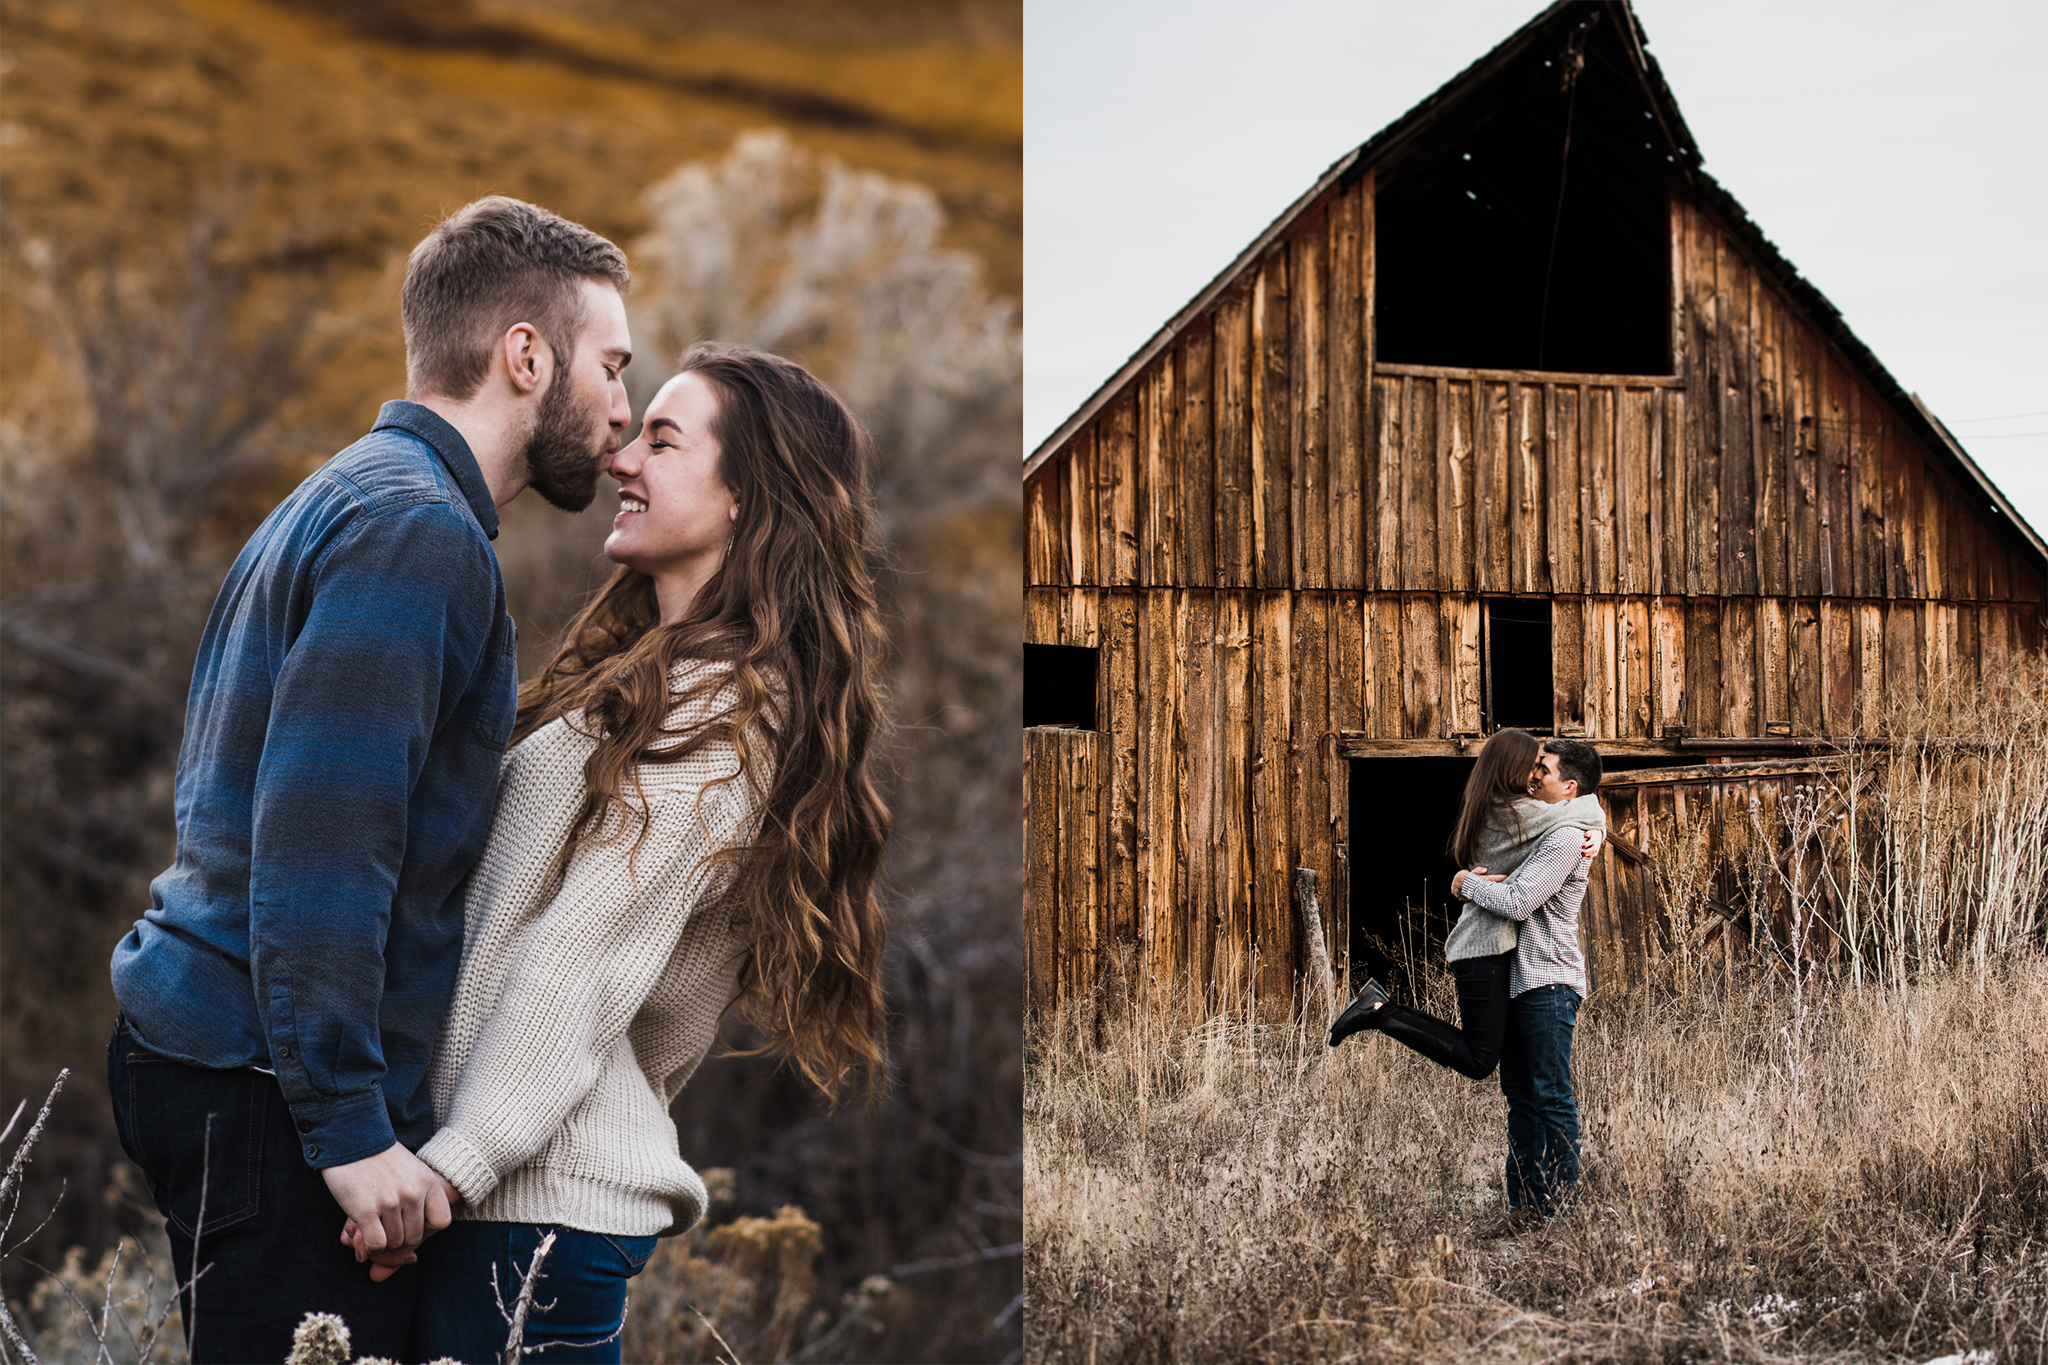 ss-photography-design-boise-idaho-wedding-and-senior-photographer-and-graphic-designer